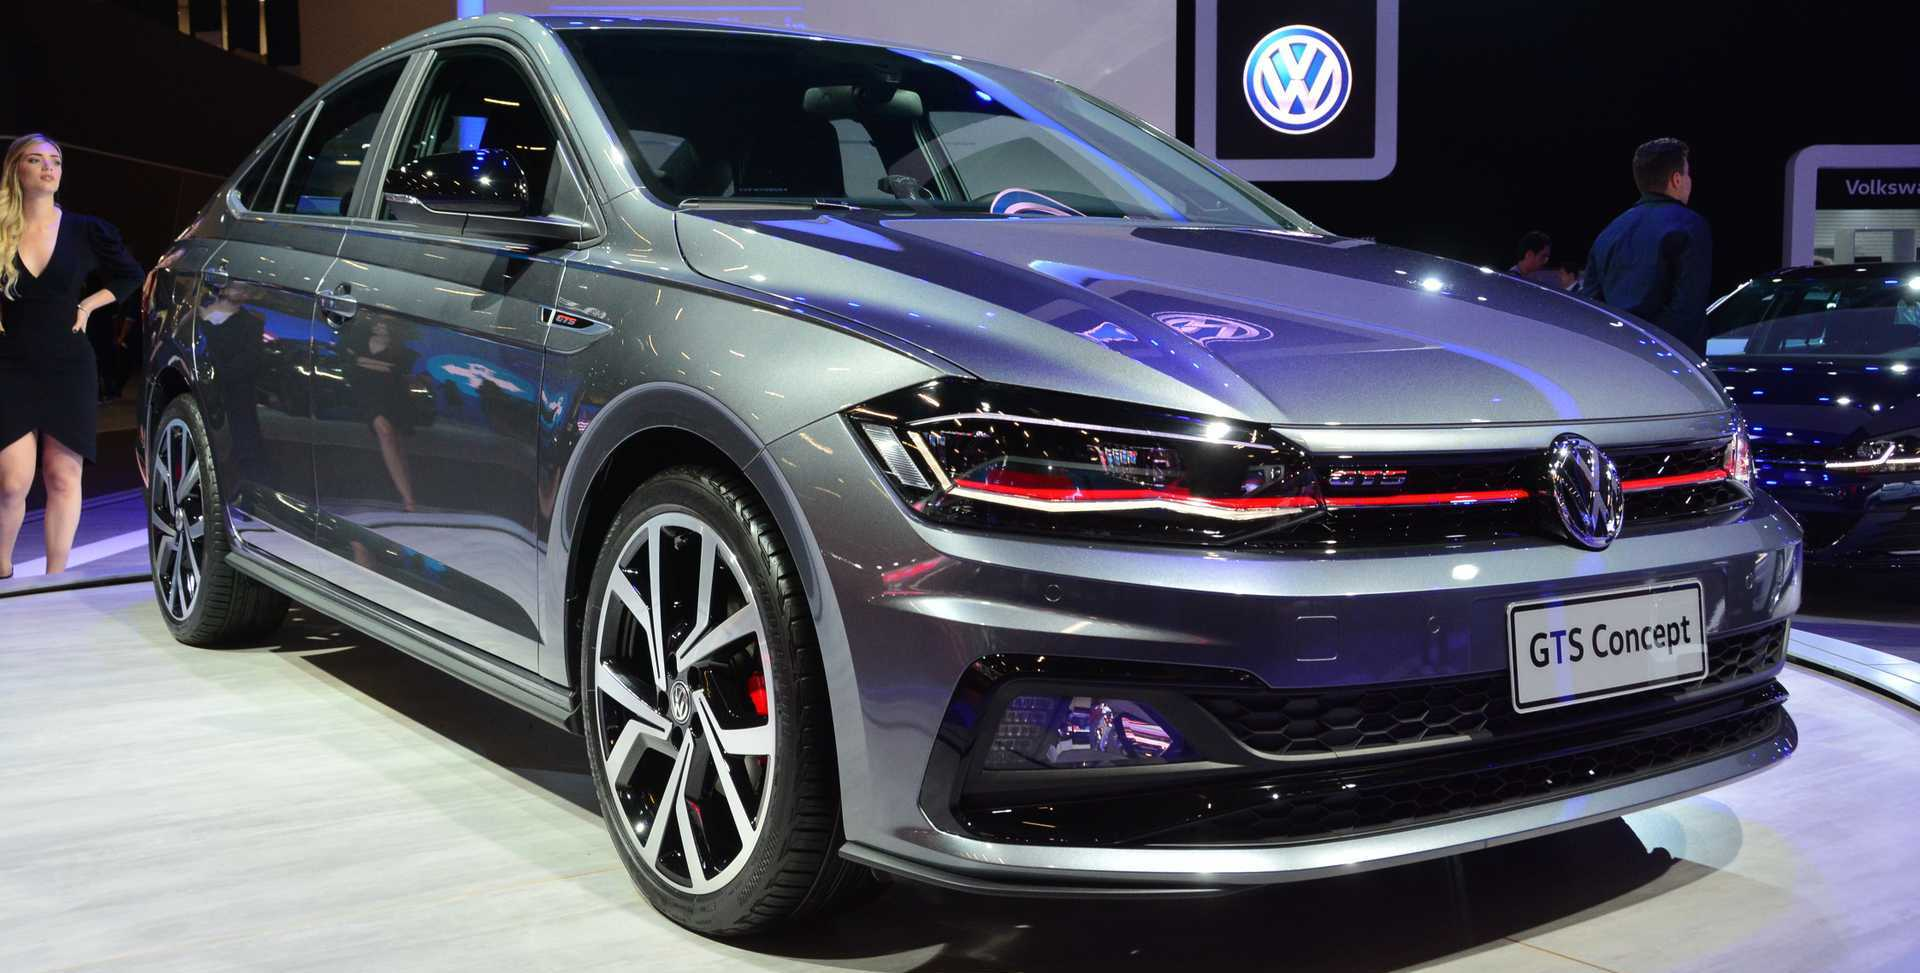 VW Virtus GTS Concept Revealed As Polo Sedan GTI, Sort Of